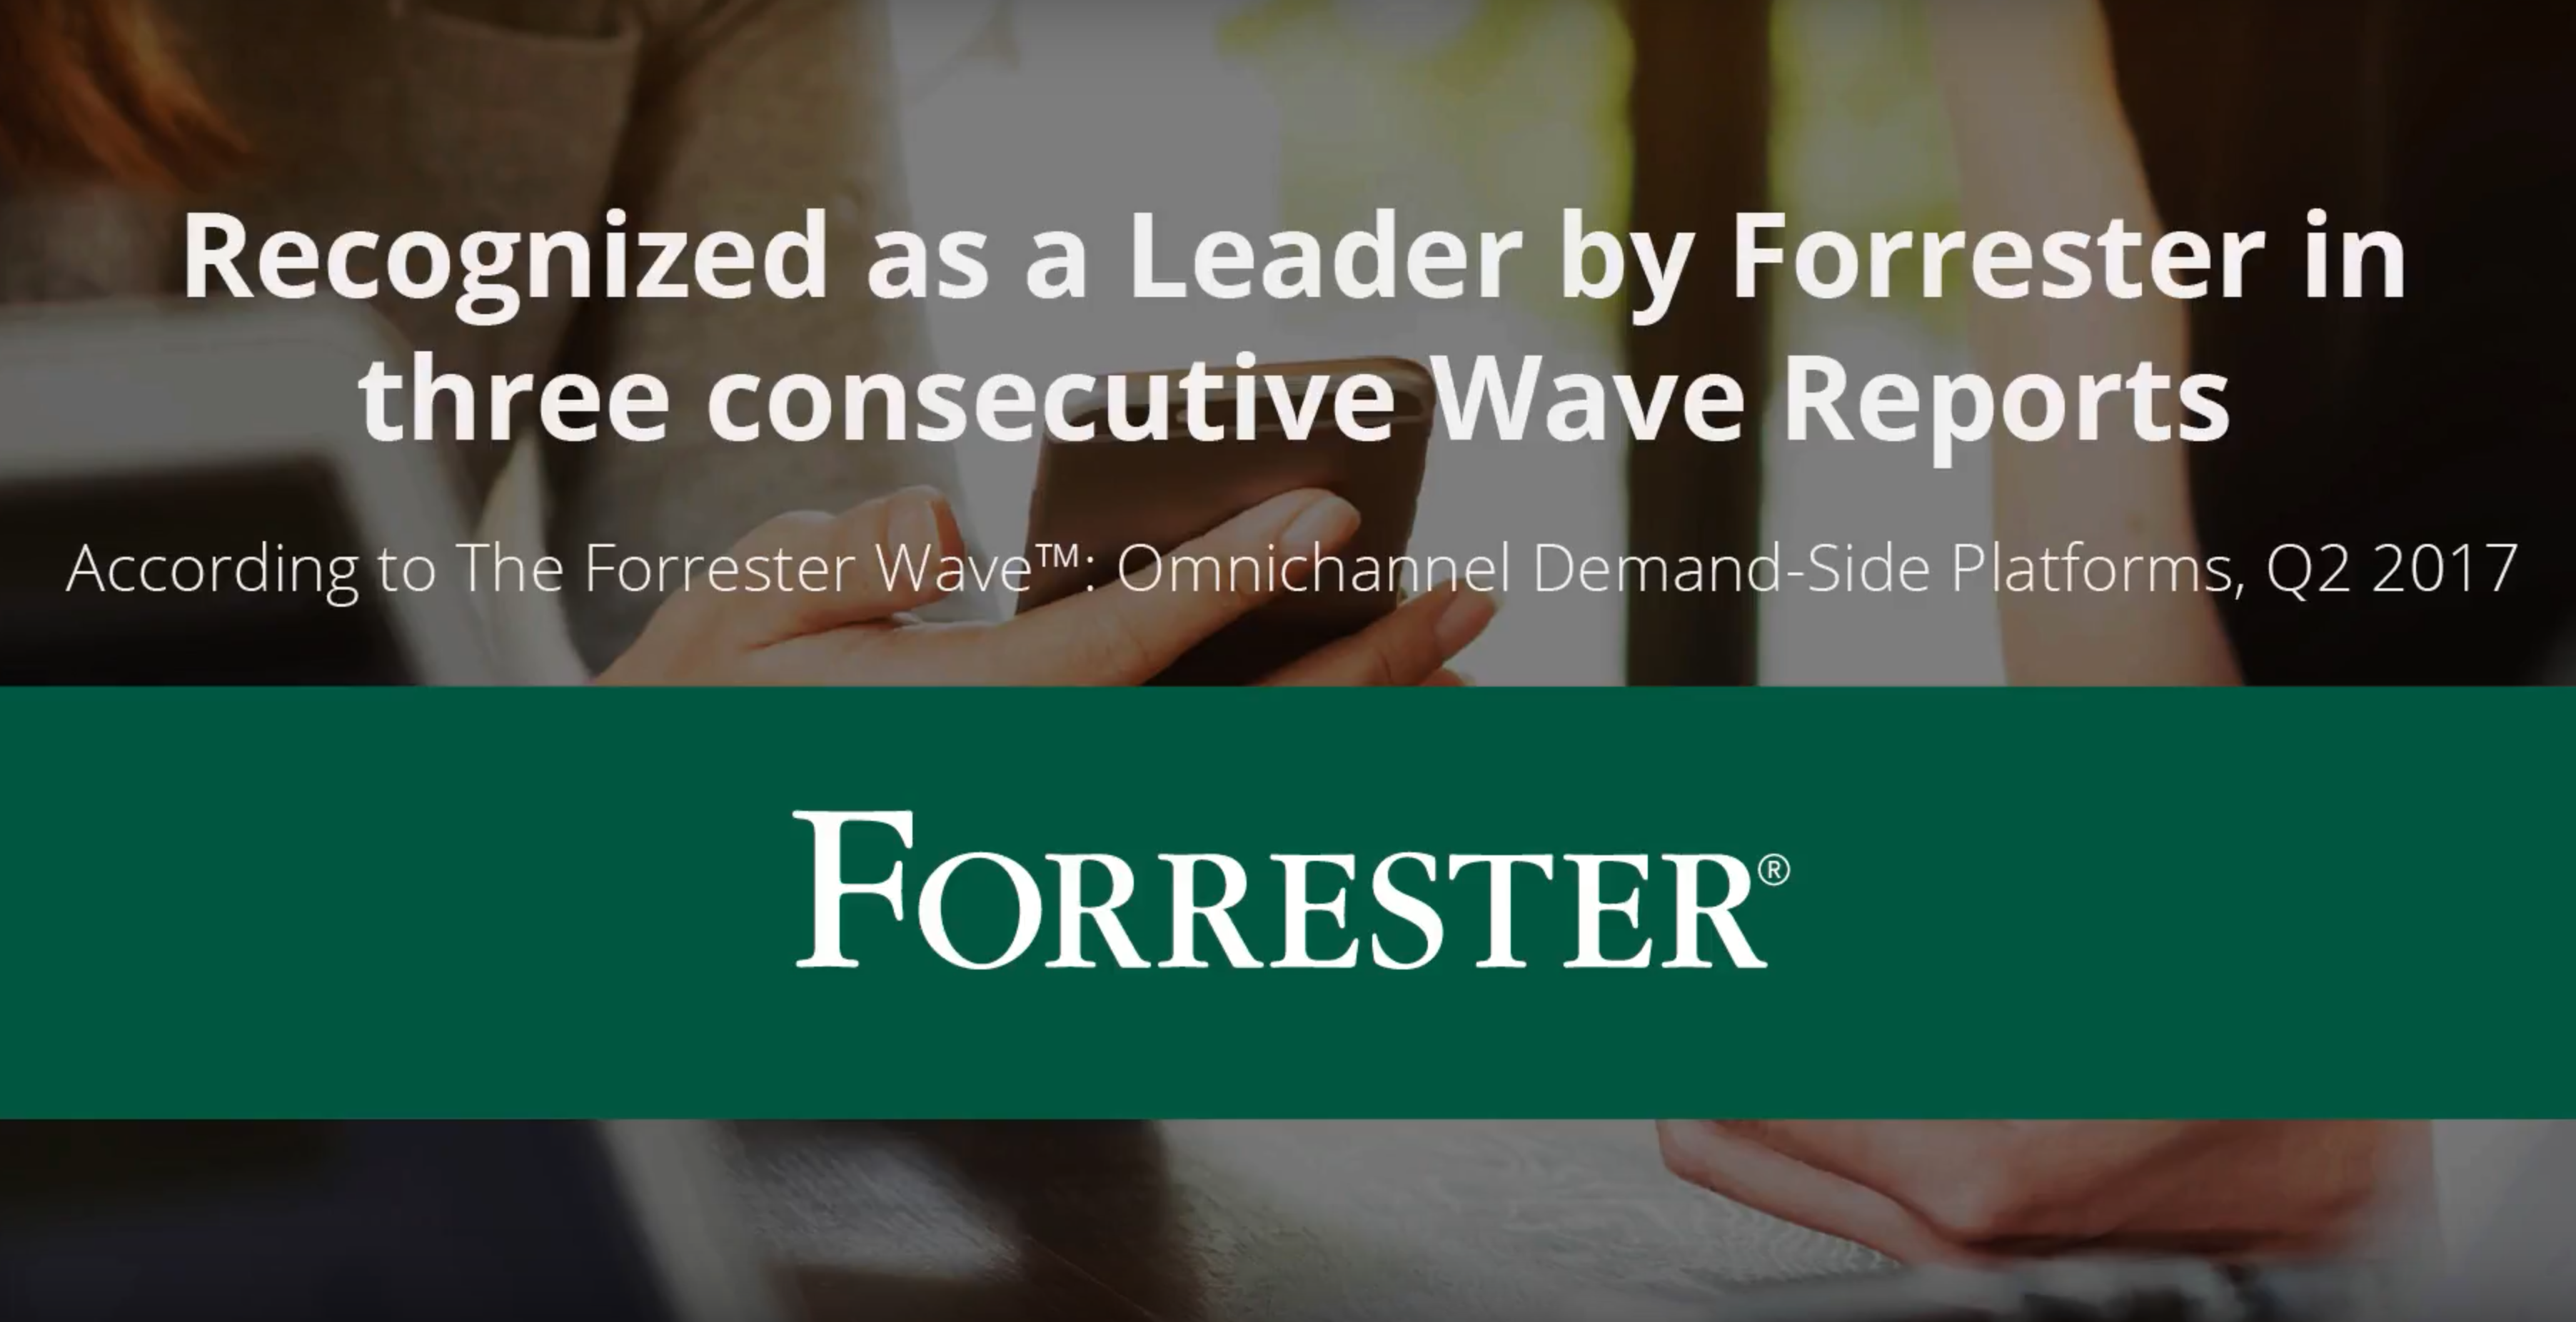 dataxu Demo - dataxu's TouchPoint DSP has been recognized three times as a Leader in the Forrester Wave